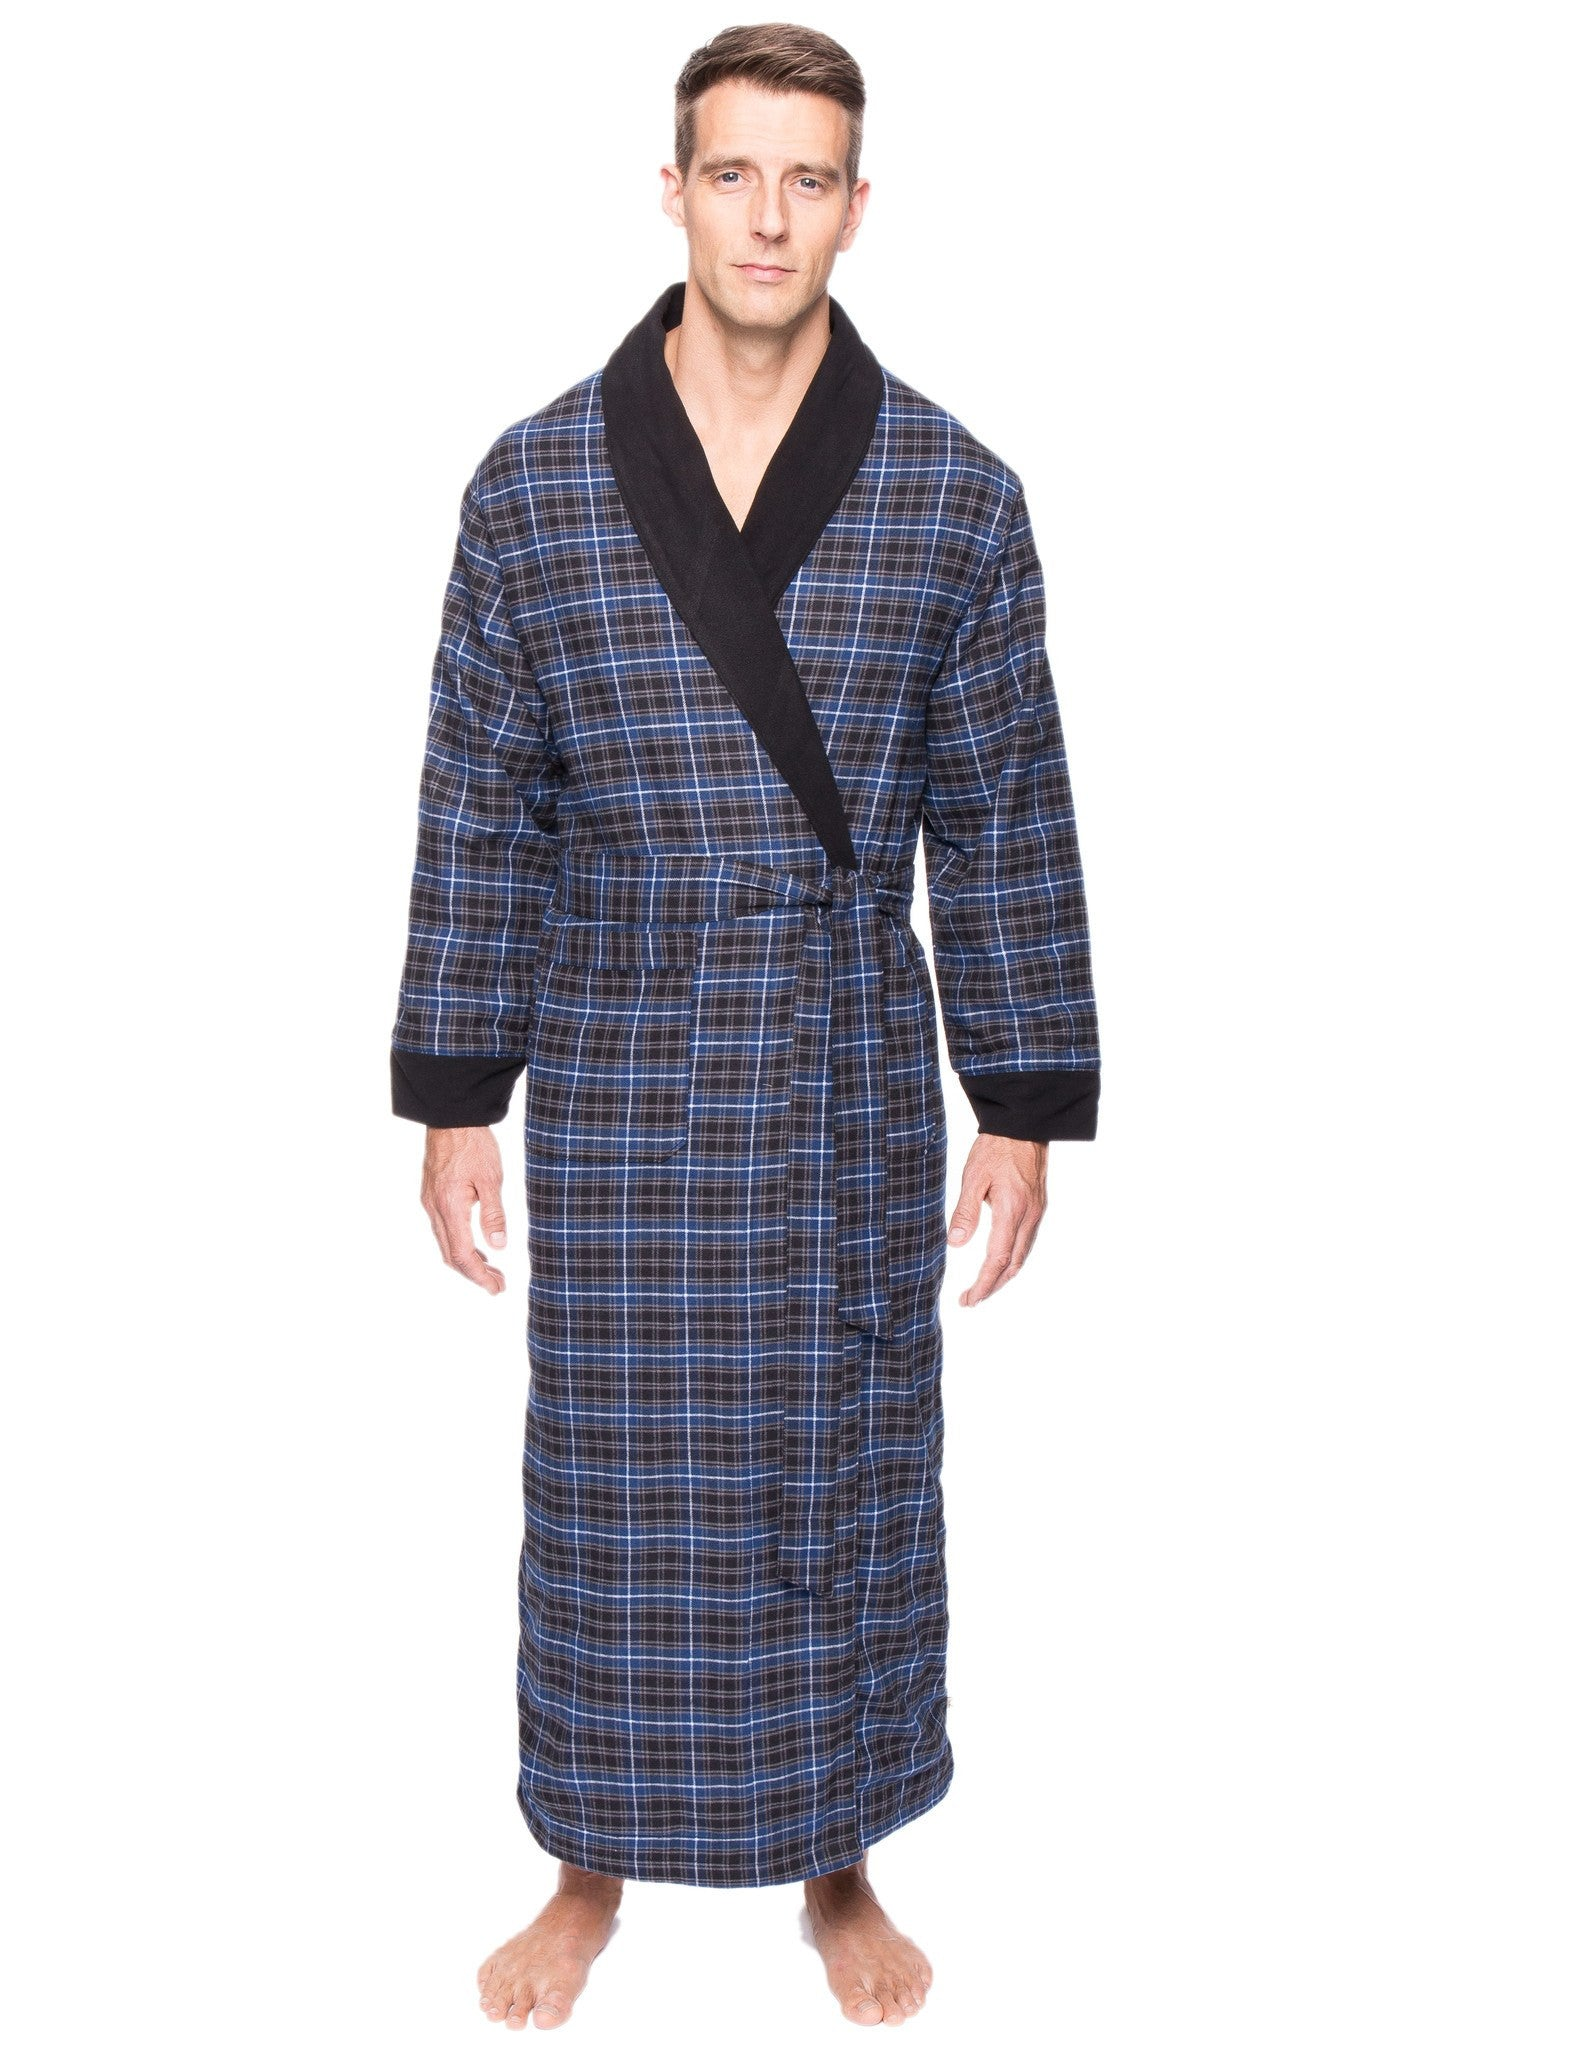 Noble Mount Men\'s 100% Cotton Flannel Fleece Lined Robe